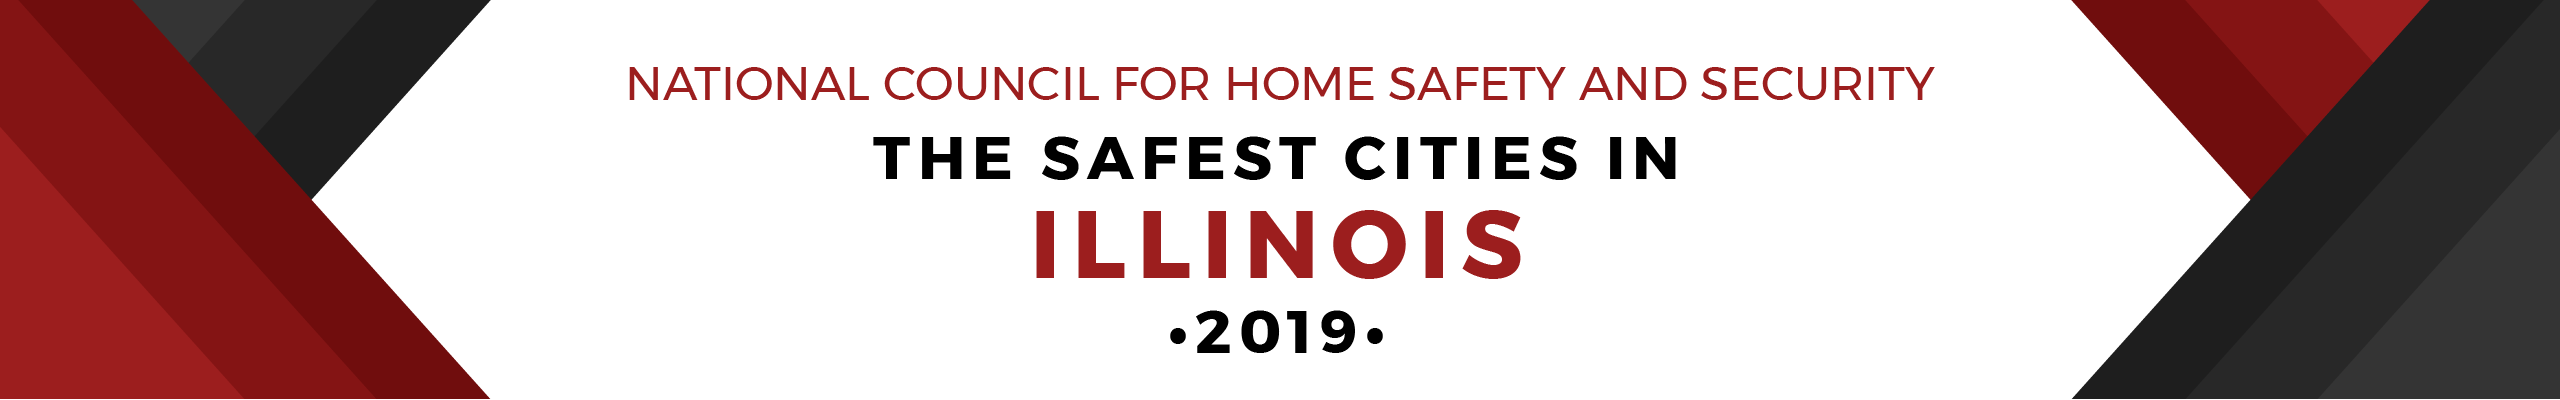 Safest Cities Illinois - header